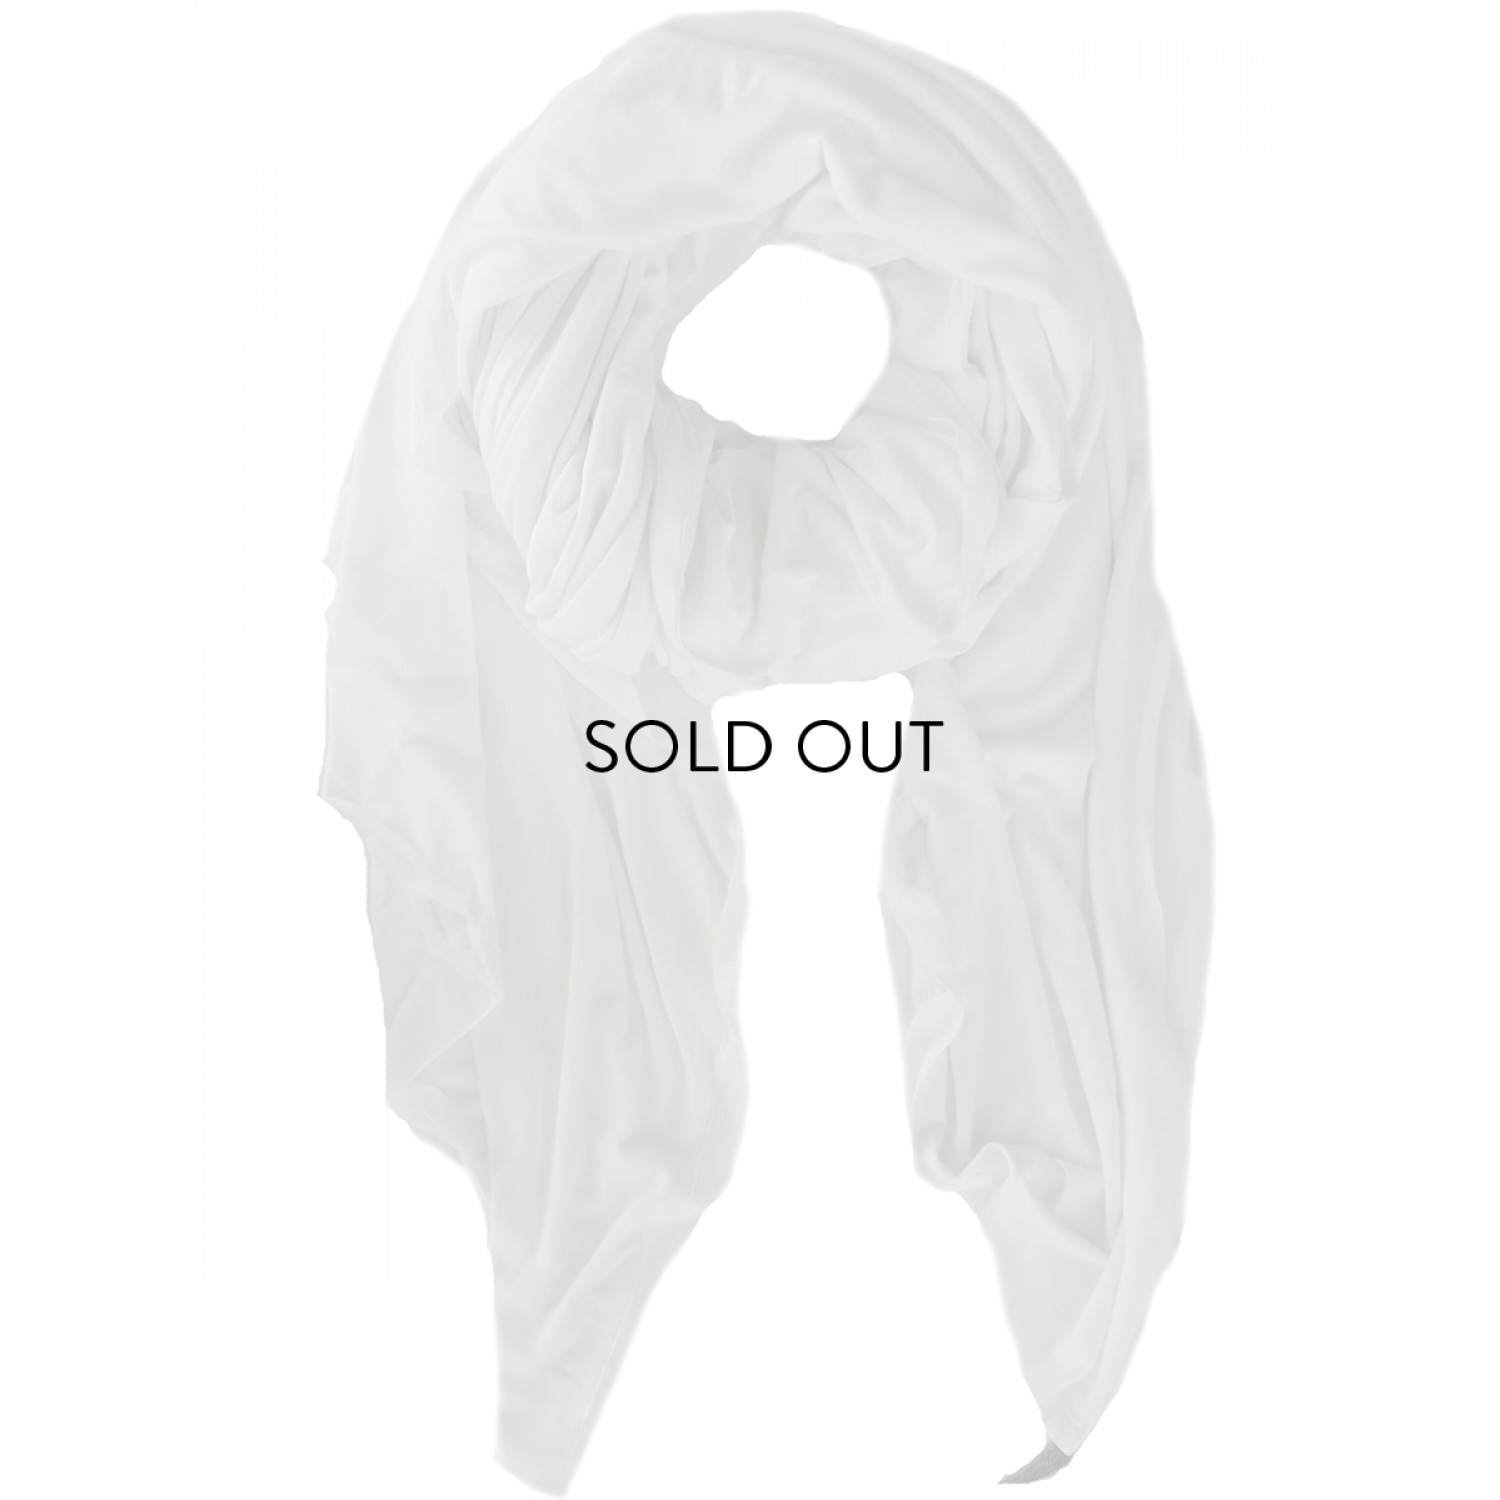 bone sold out